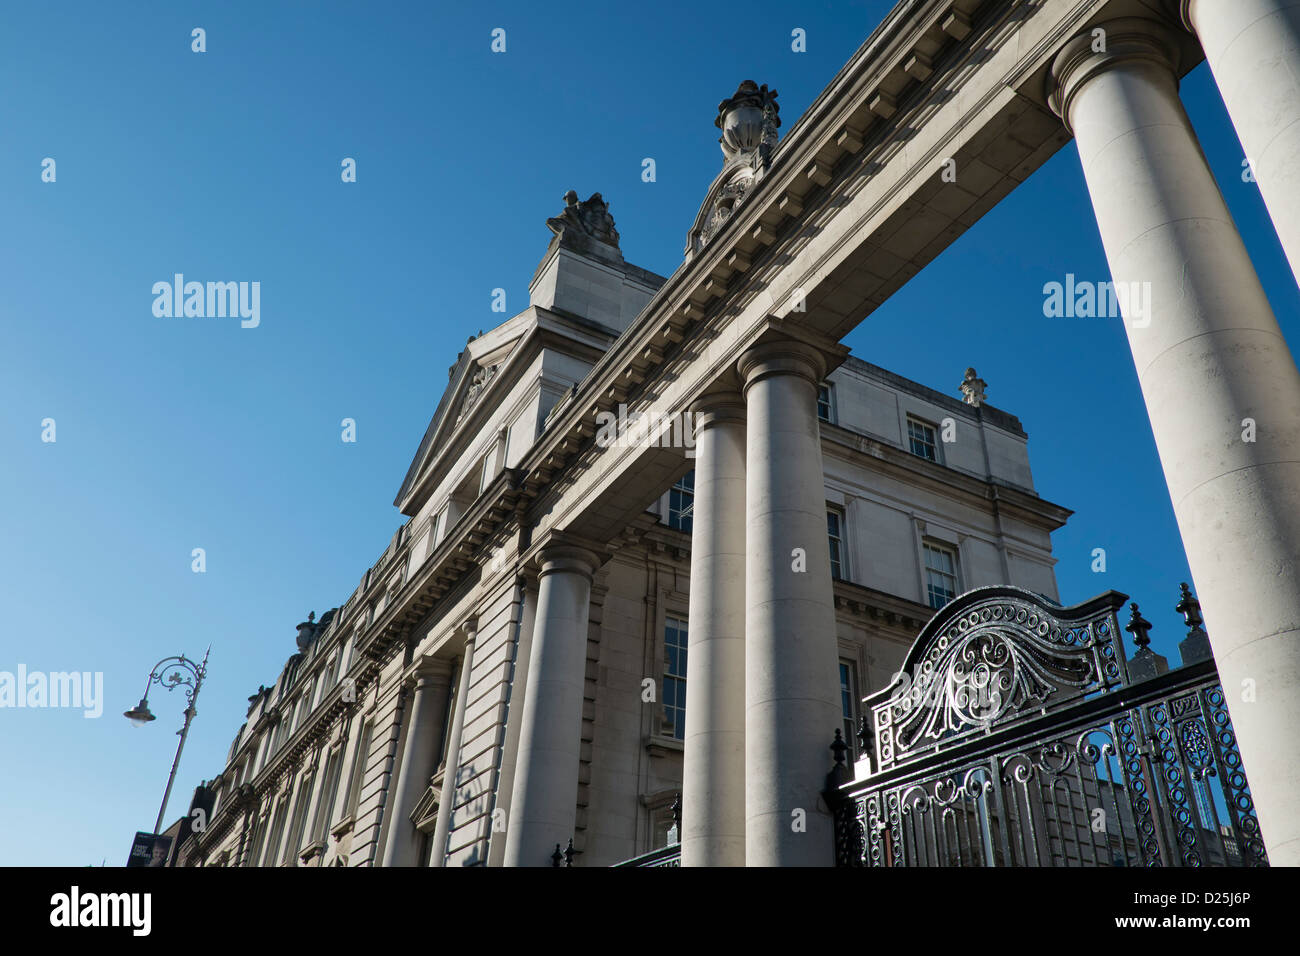 Leinster House National Parliament building for Republic of Ireland Stock Photo